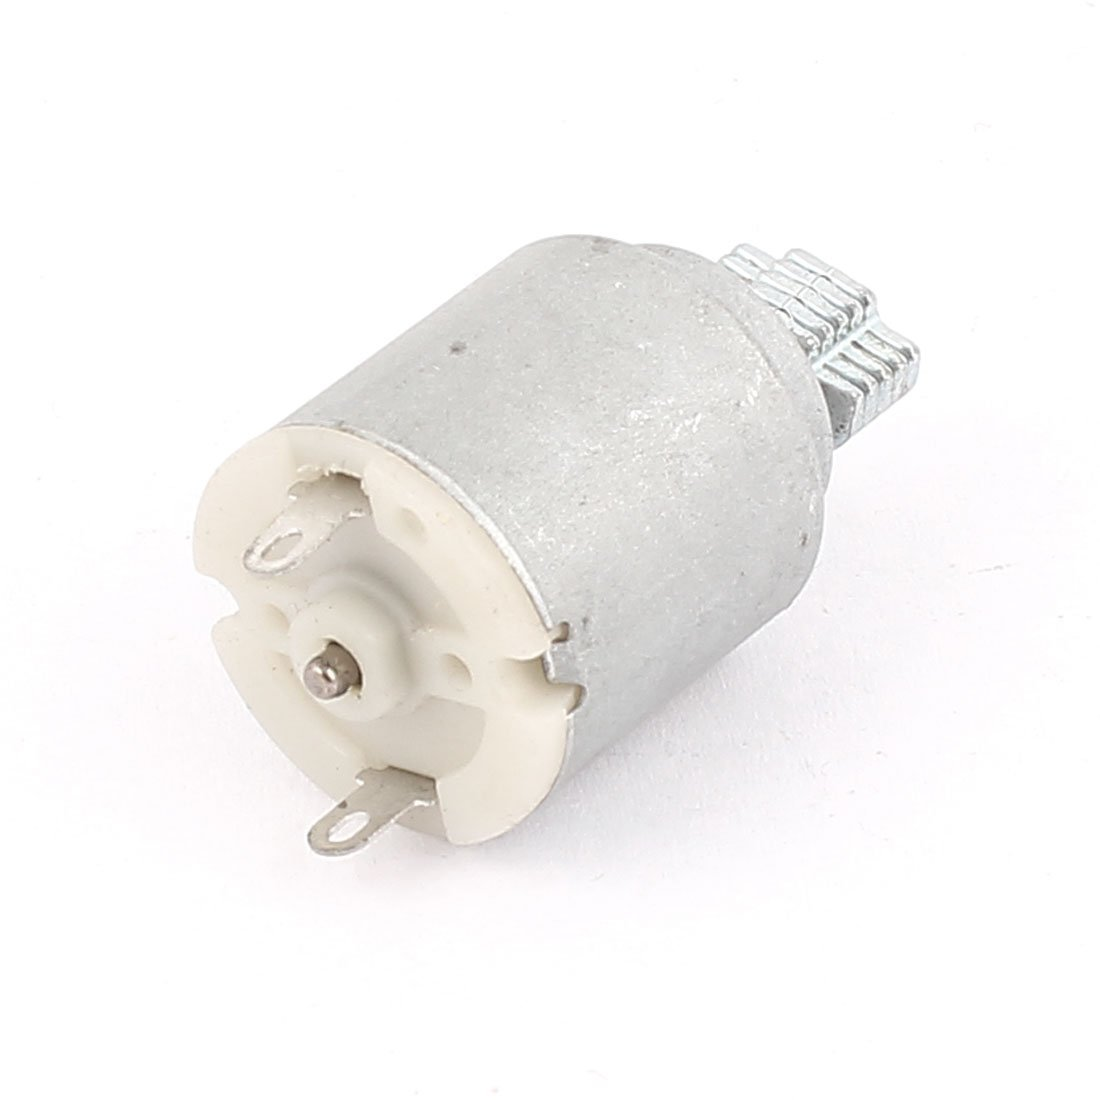 eDealMax DC 1.5-6V 4300RPM High Torque Mini Micro Vibrating motor de la vibración - - Amazon.com